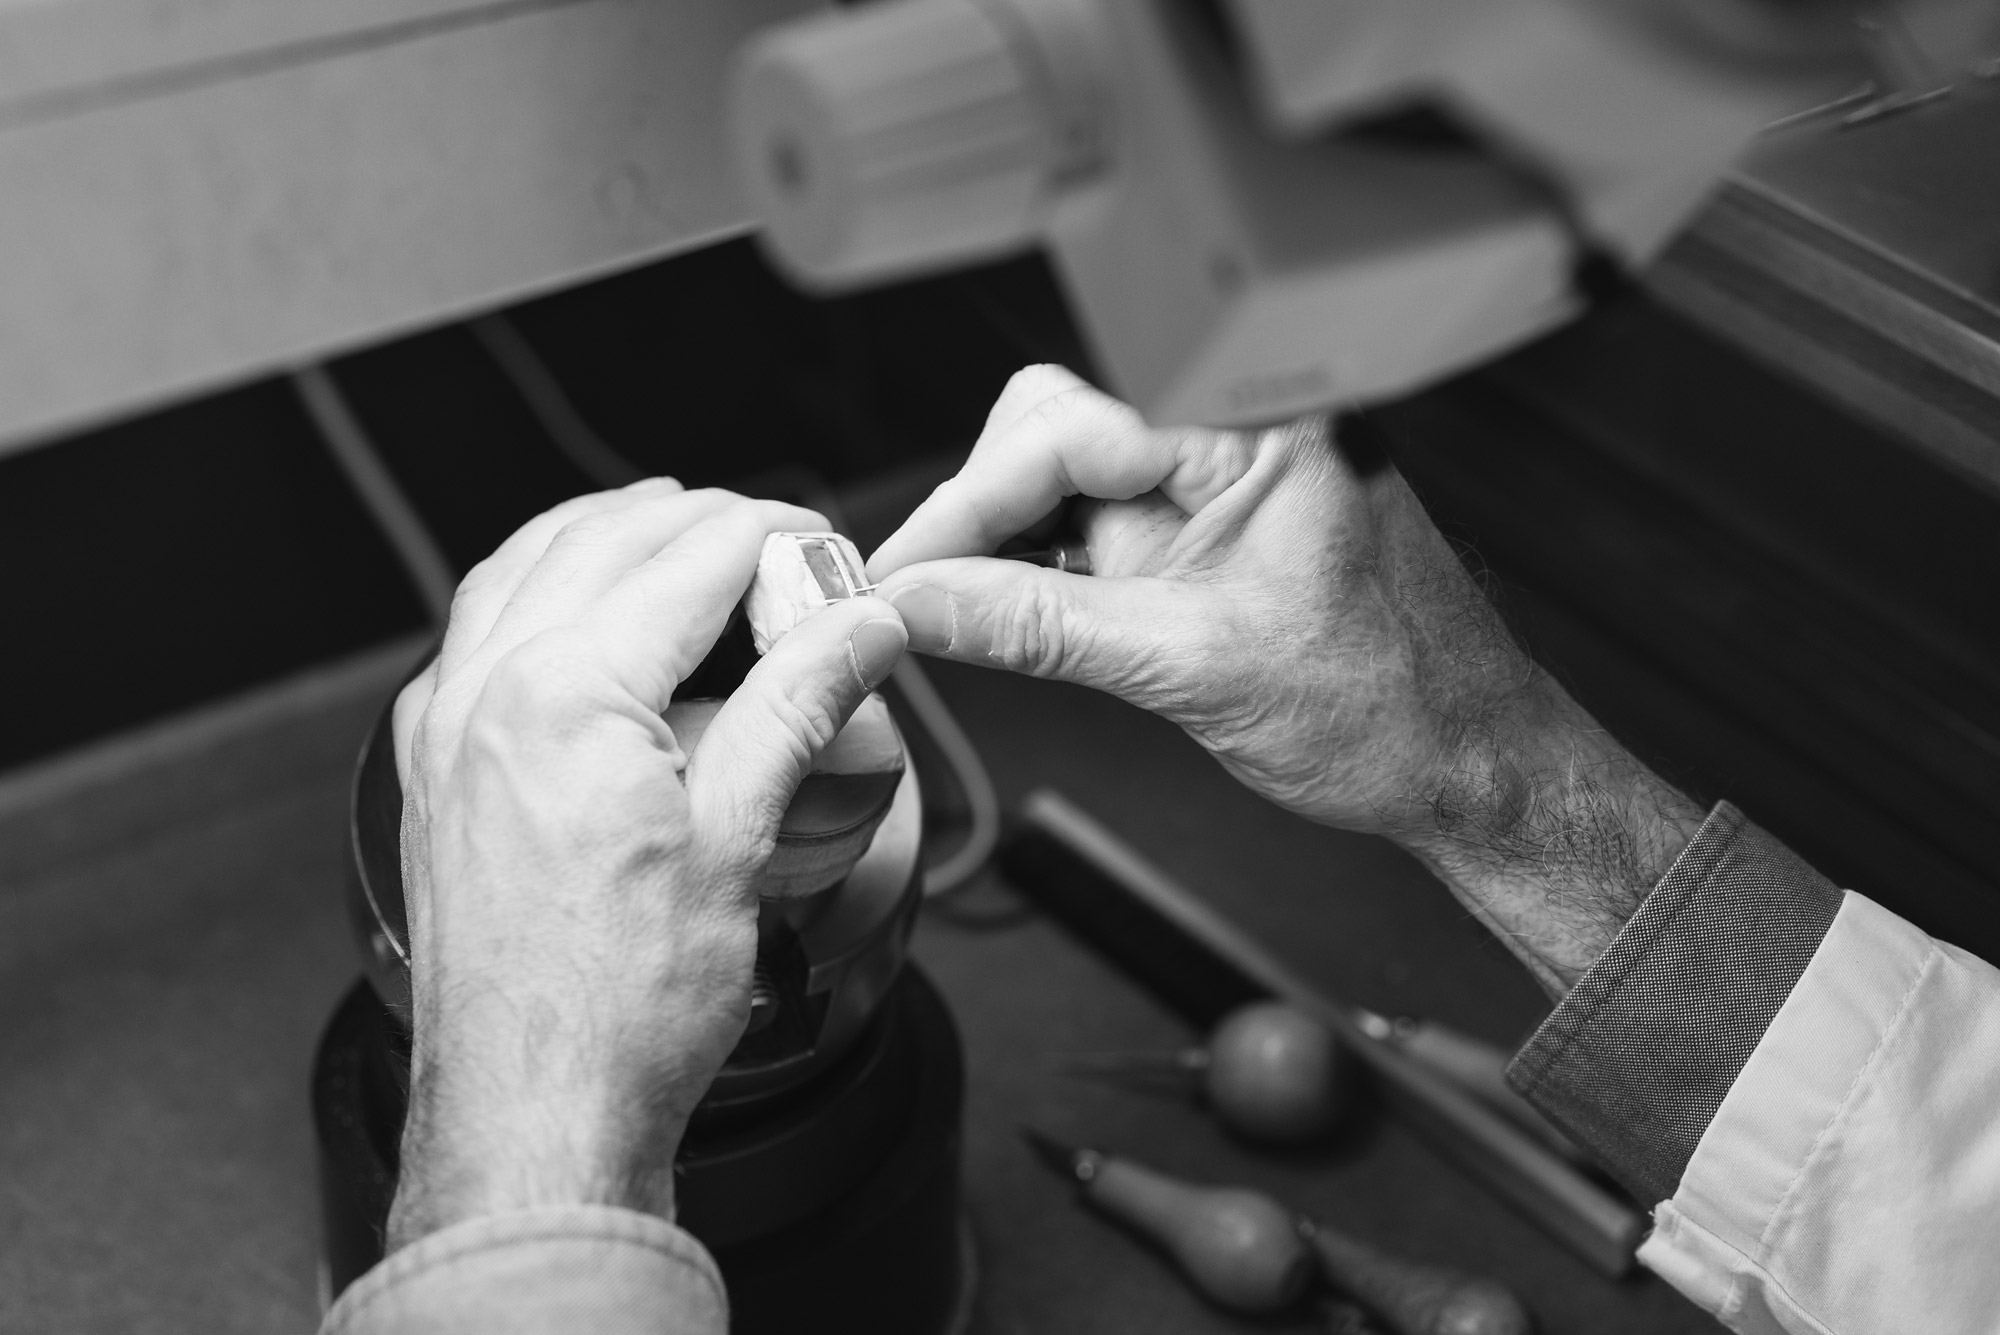 Inside the Jaeger-LeCoultre manufacture